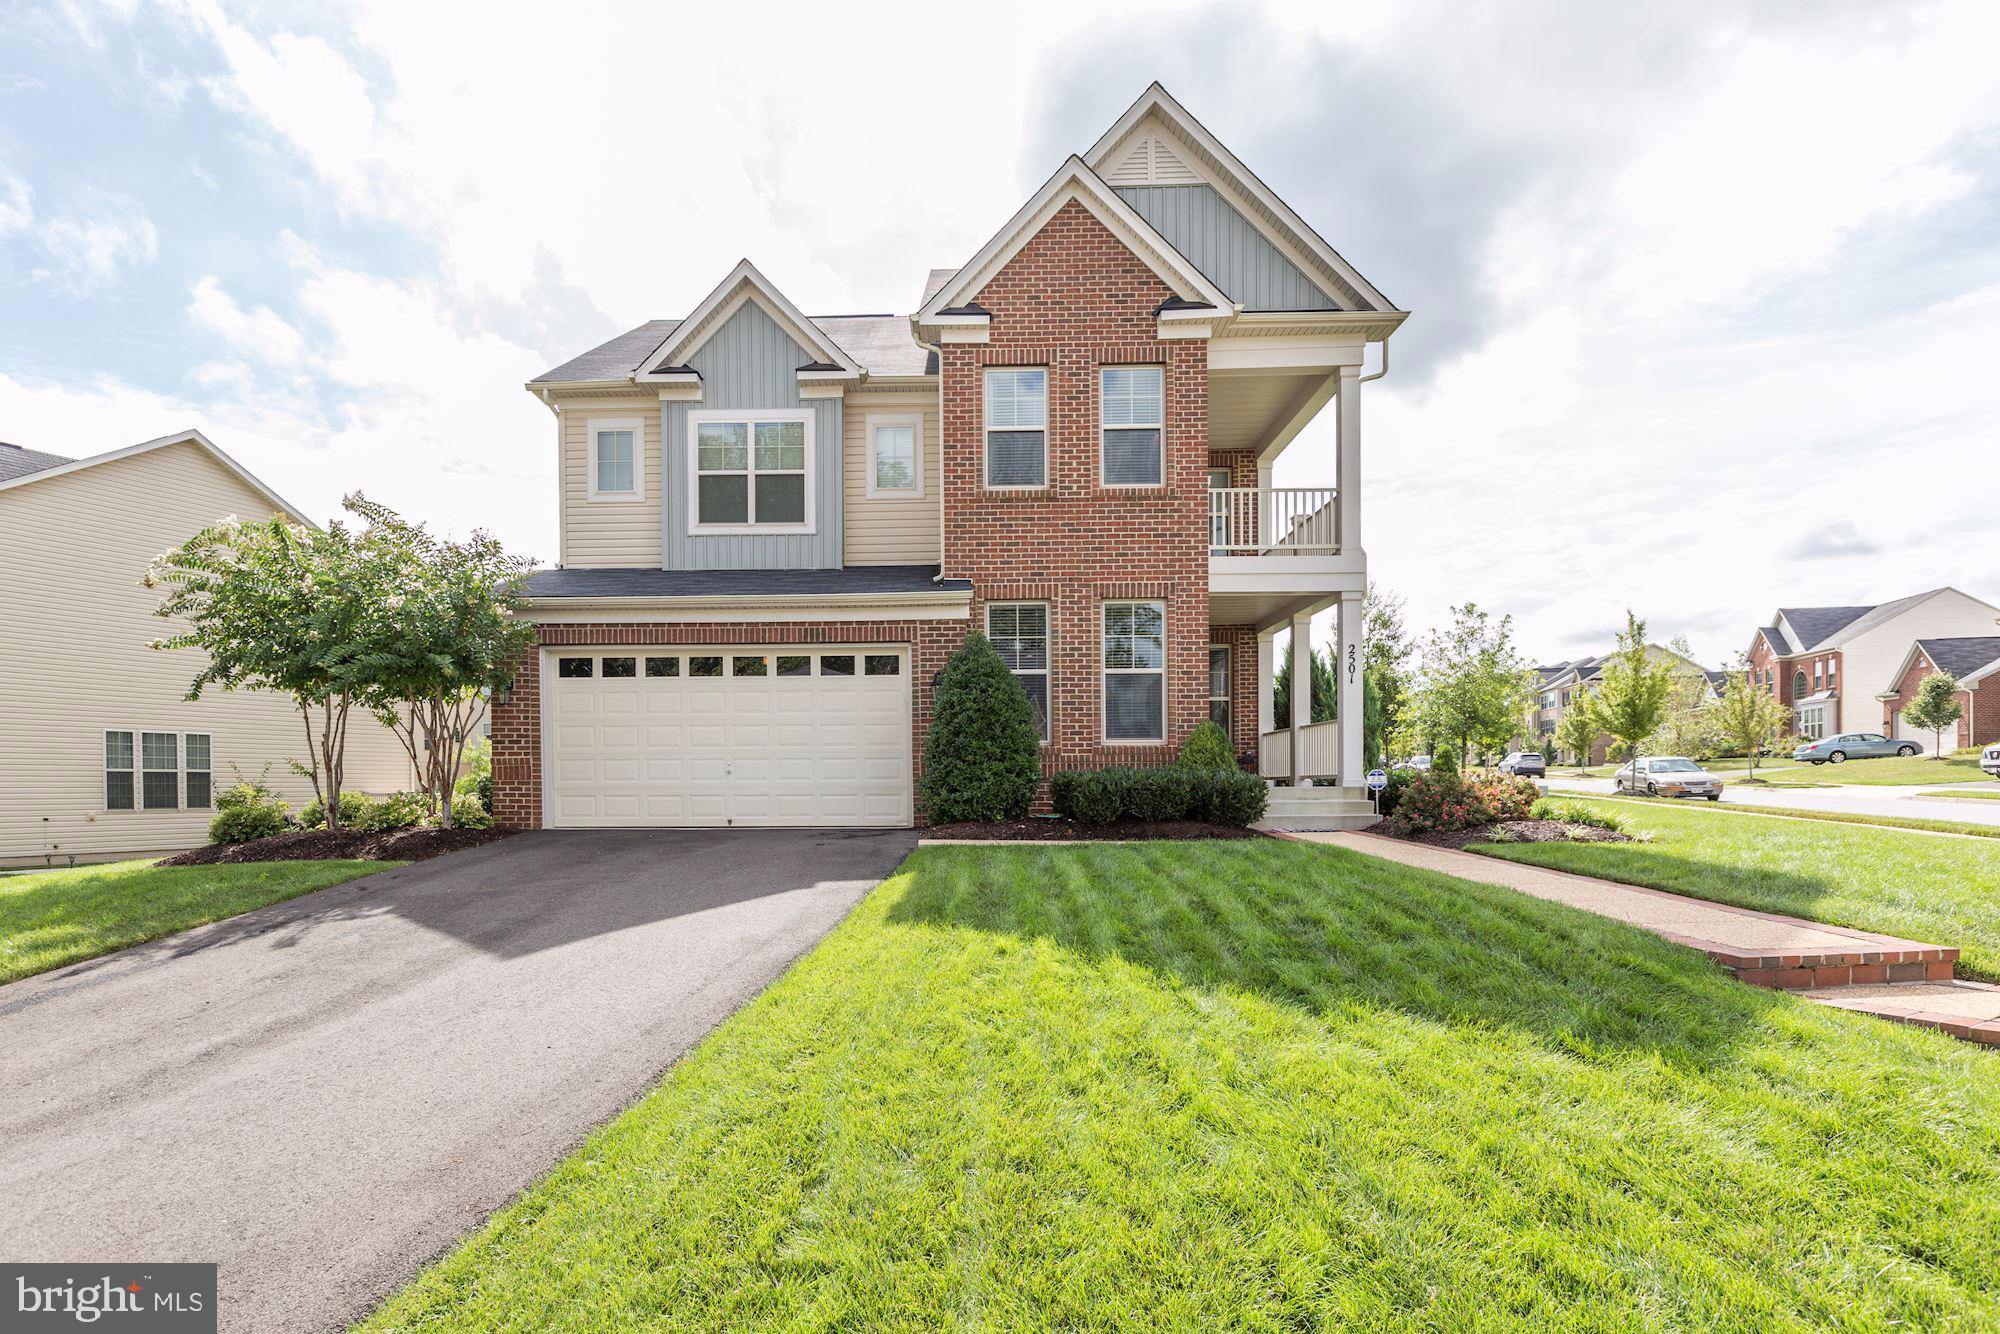 2501 SAINT NICHOLAS WAY, LANHAM, MD 20706